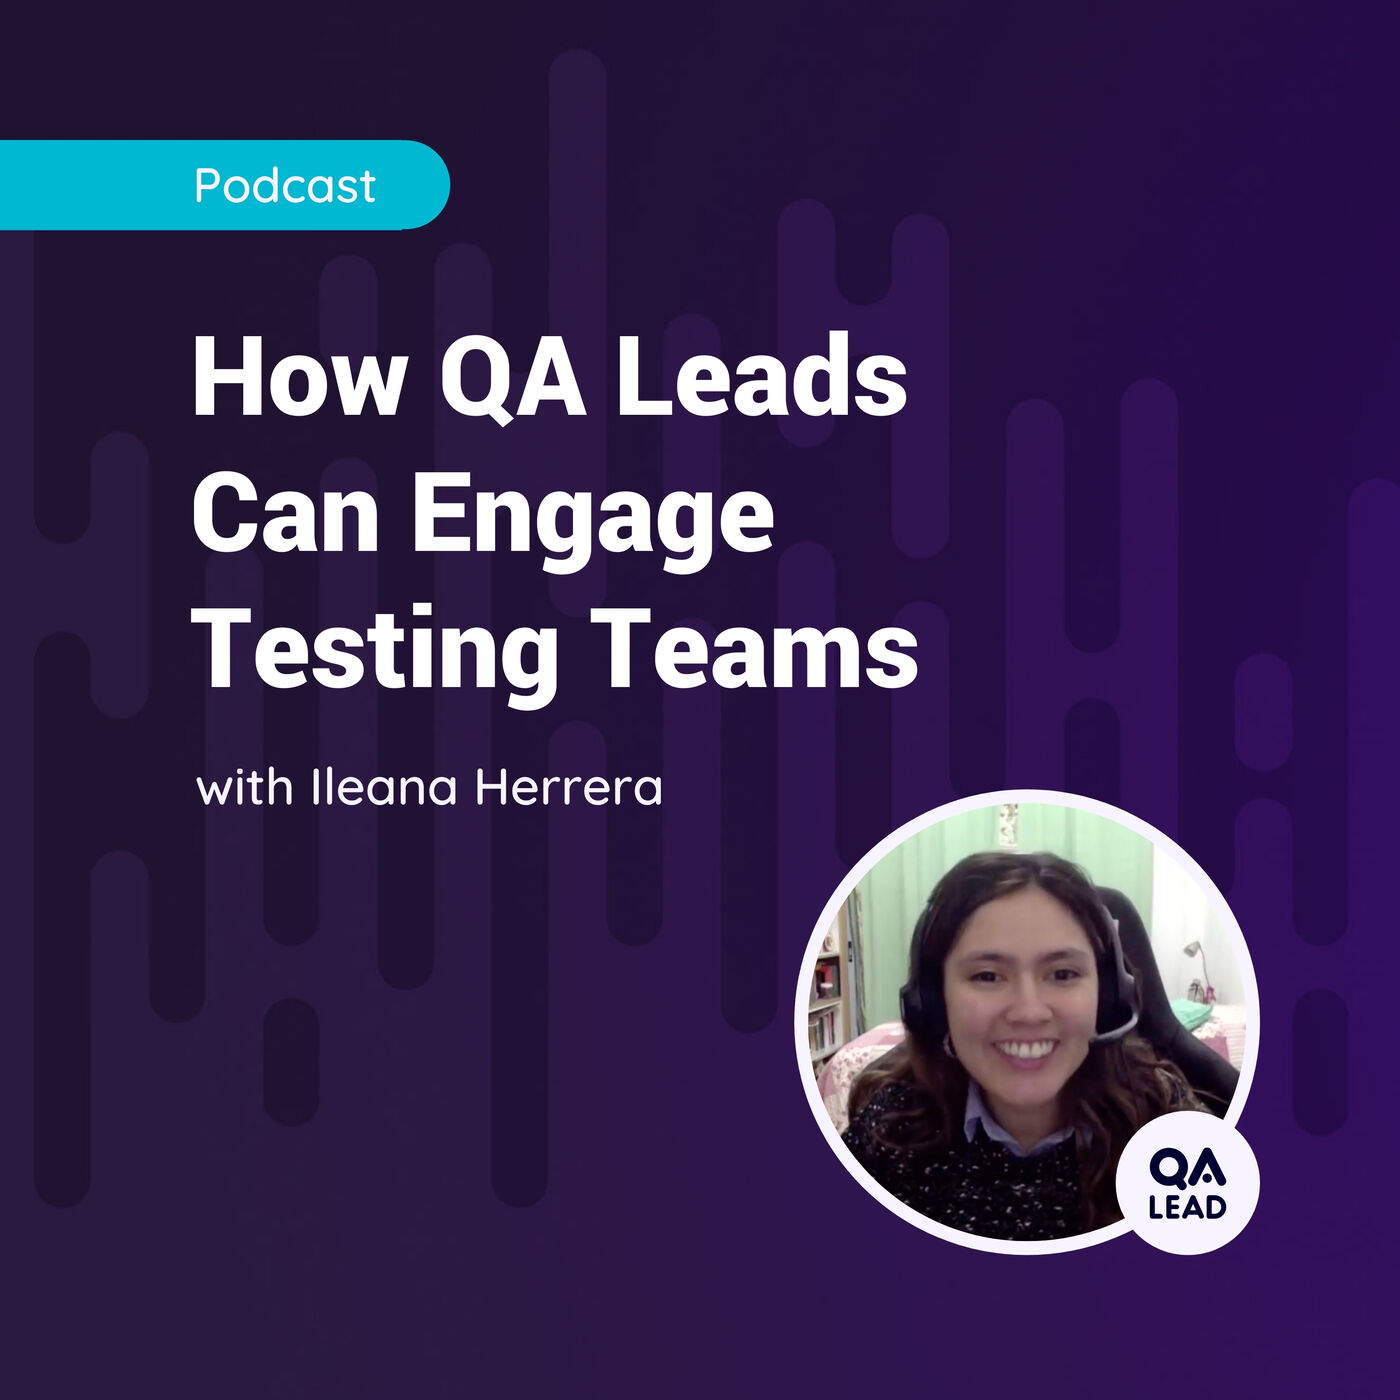 How QA Leads Can Engage Testing Teams (with Ileana Herrera from JBKnowledge)